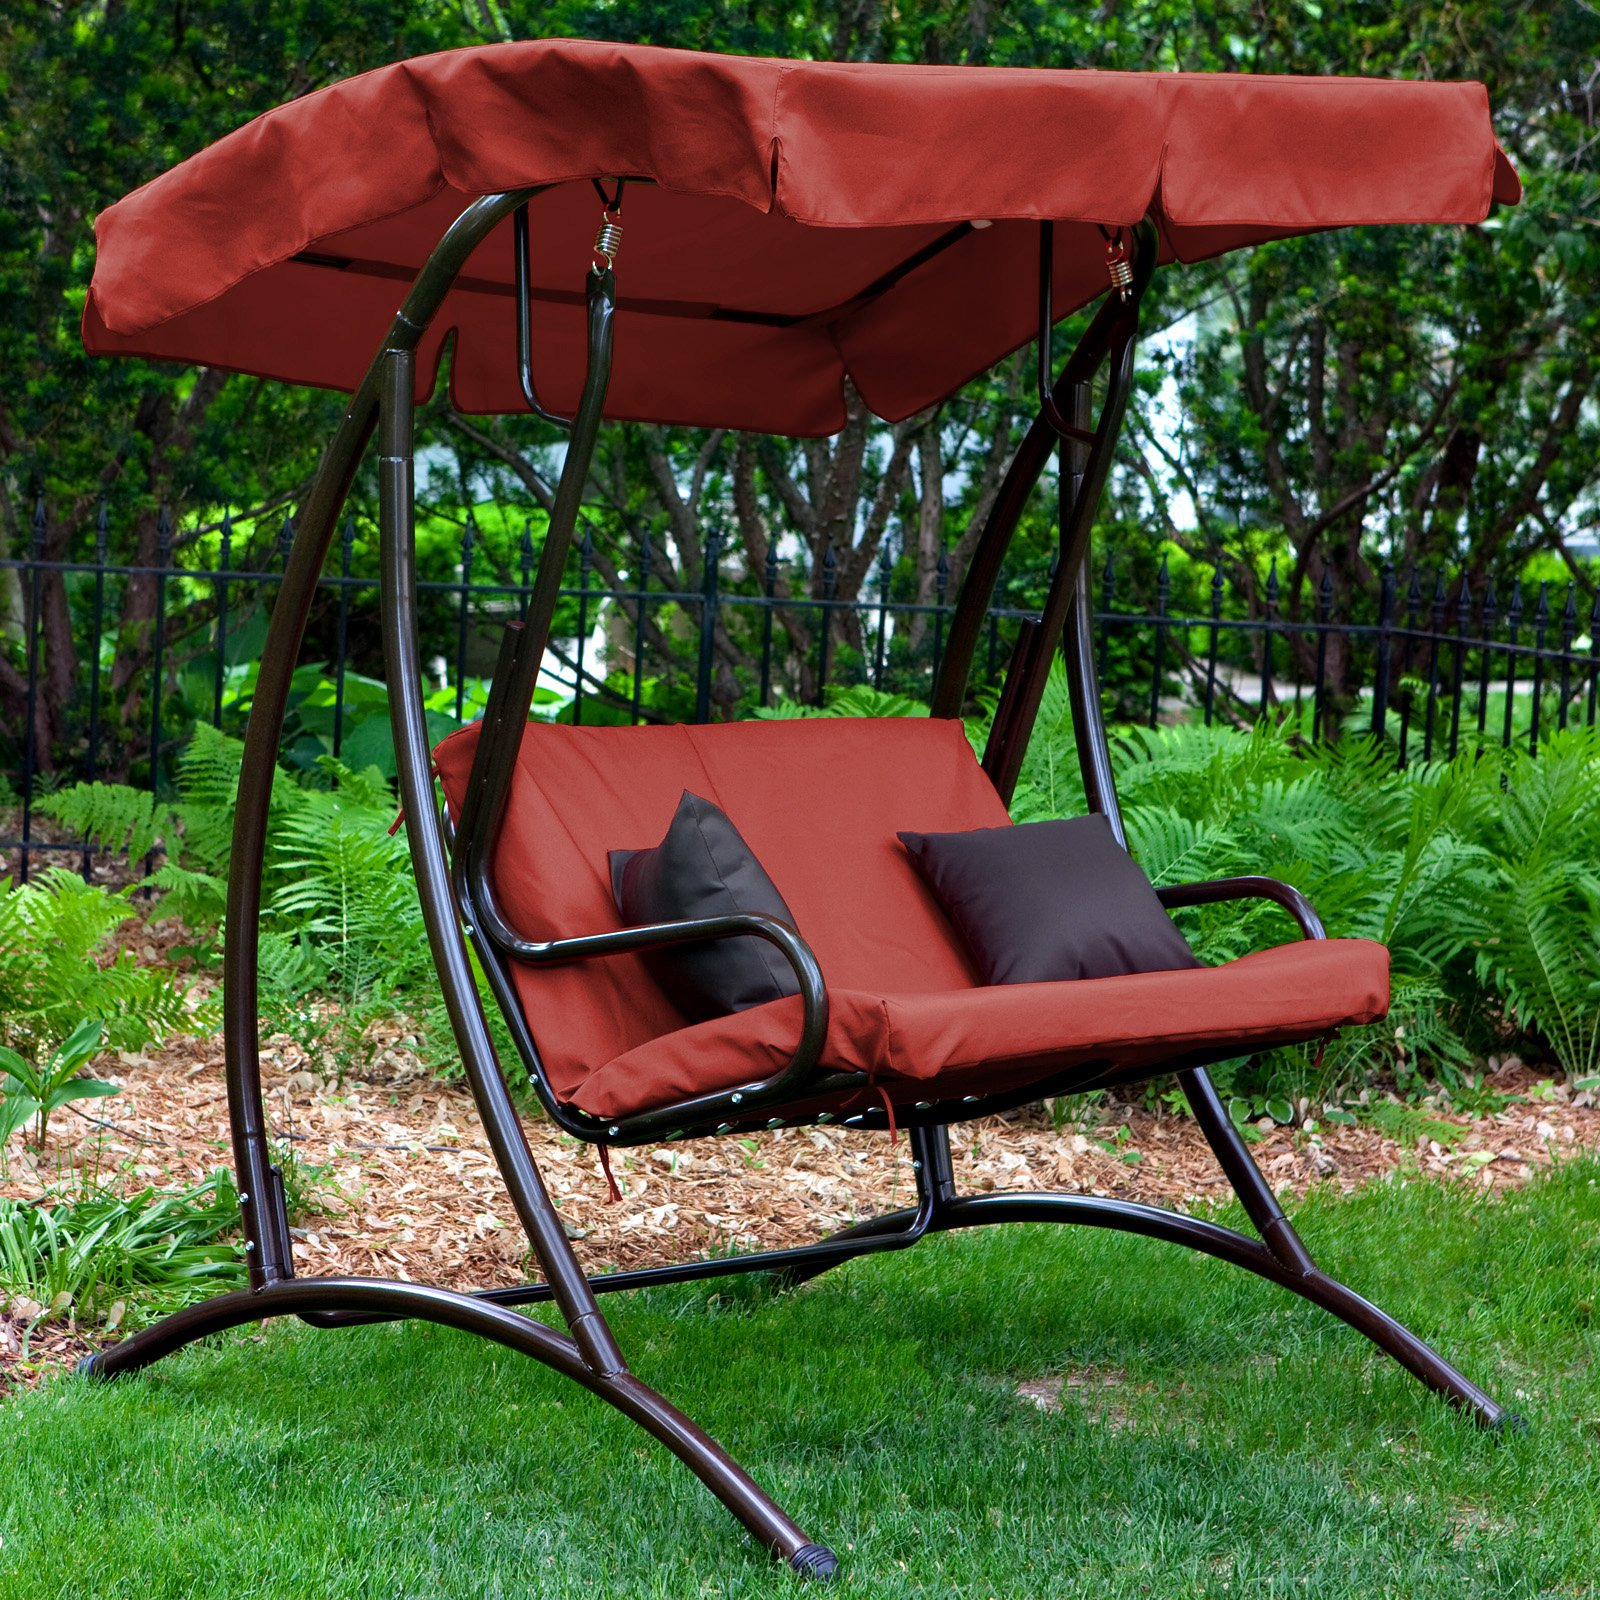 How To Replace A Canopy On An Outdoor Swing (Image 16 of 25)